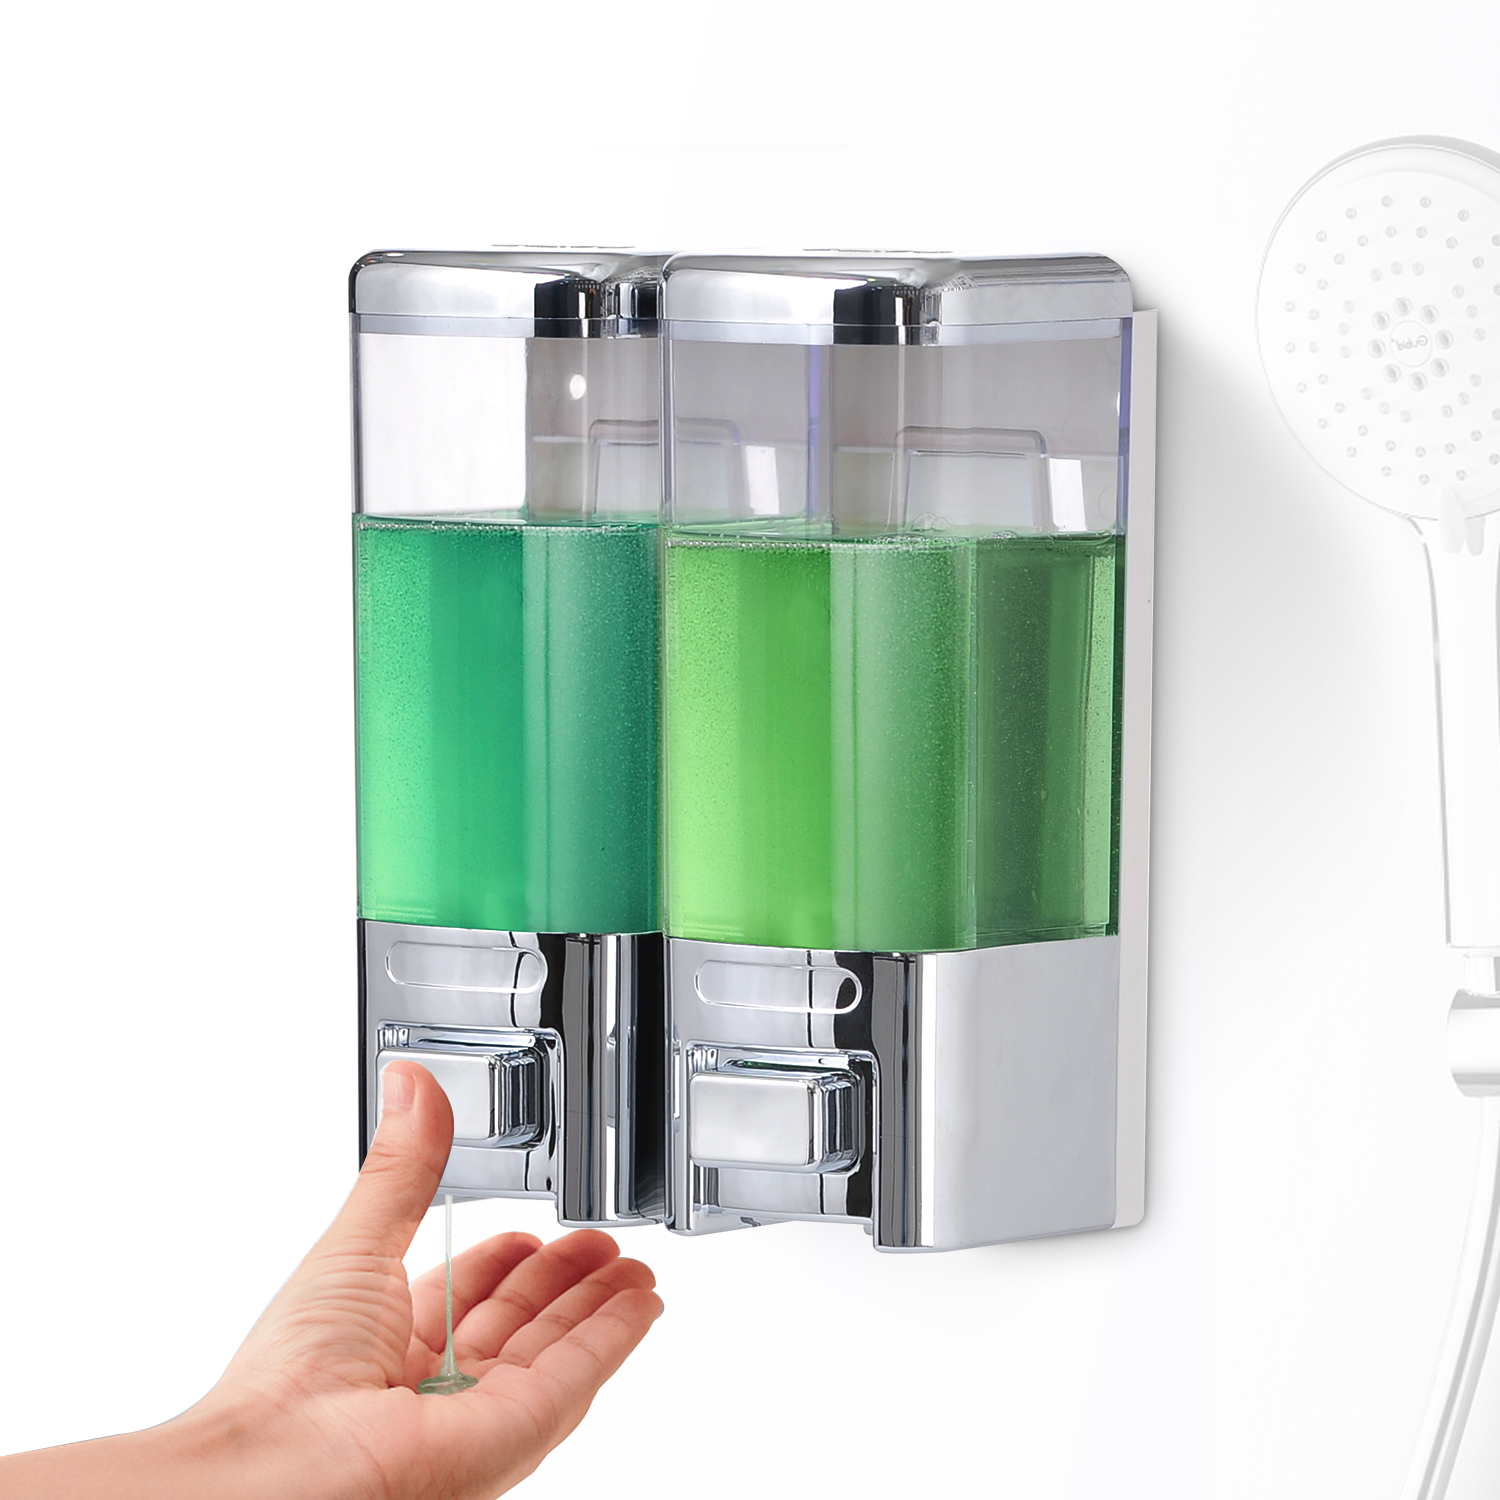 Triple Liquid Dish Soap Dispenser V-8102